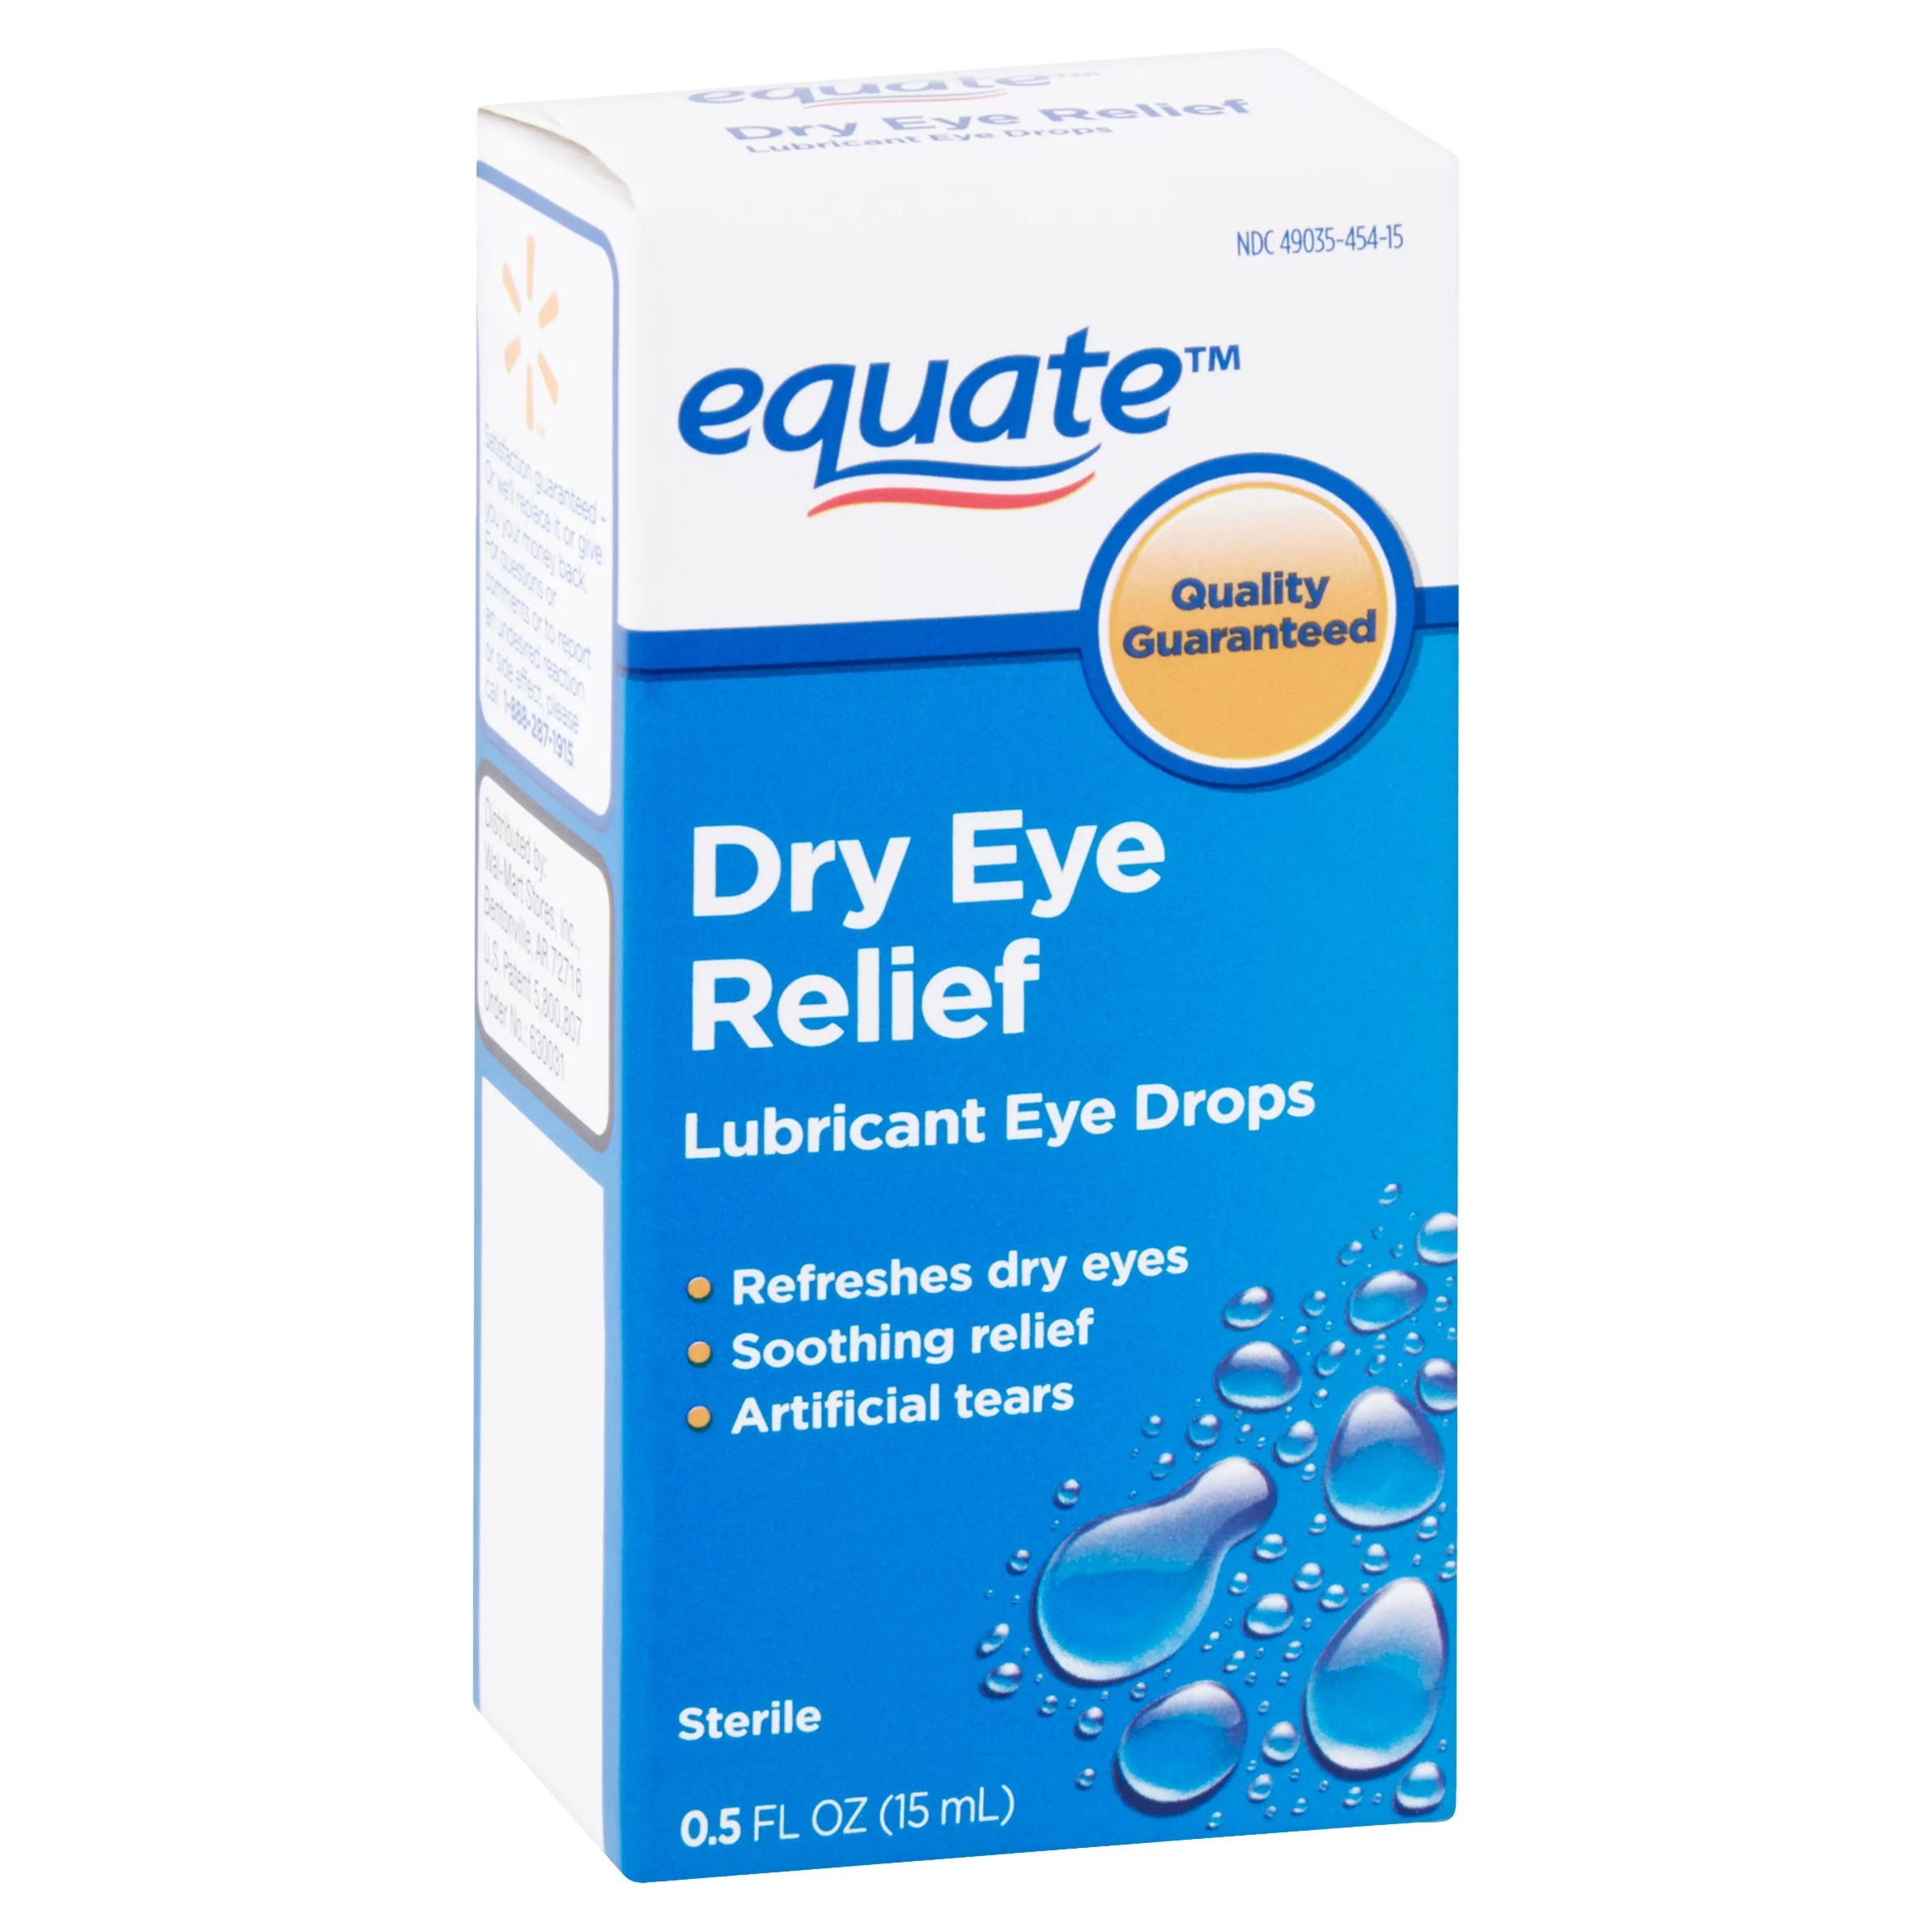 Equate Lubricant Eye Drops for Dry Eye Relief 0.5 fl oz ...